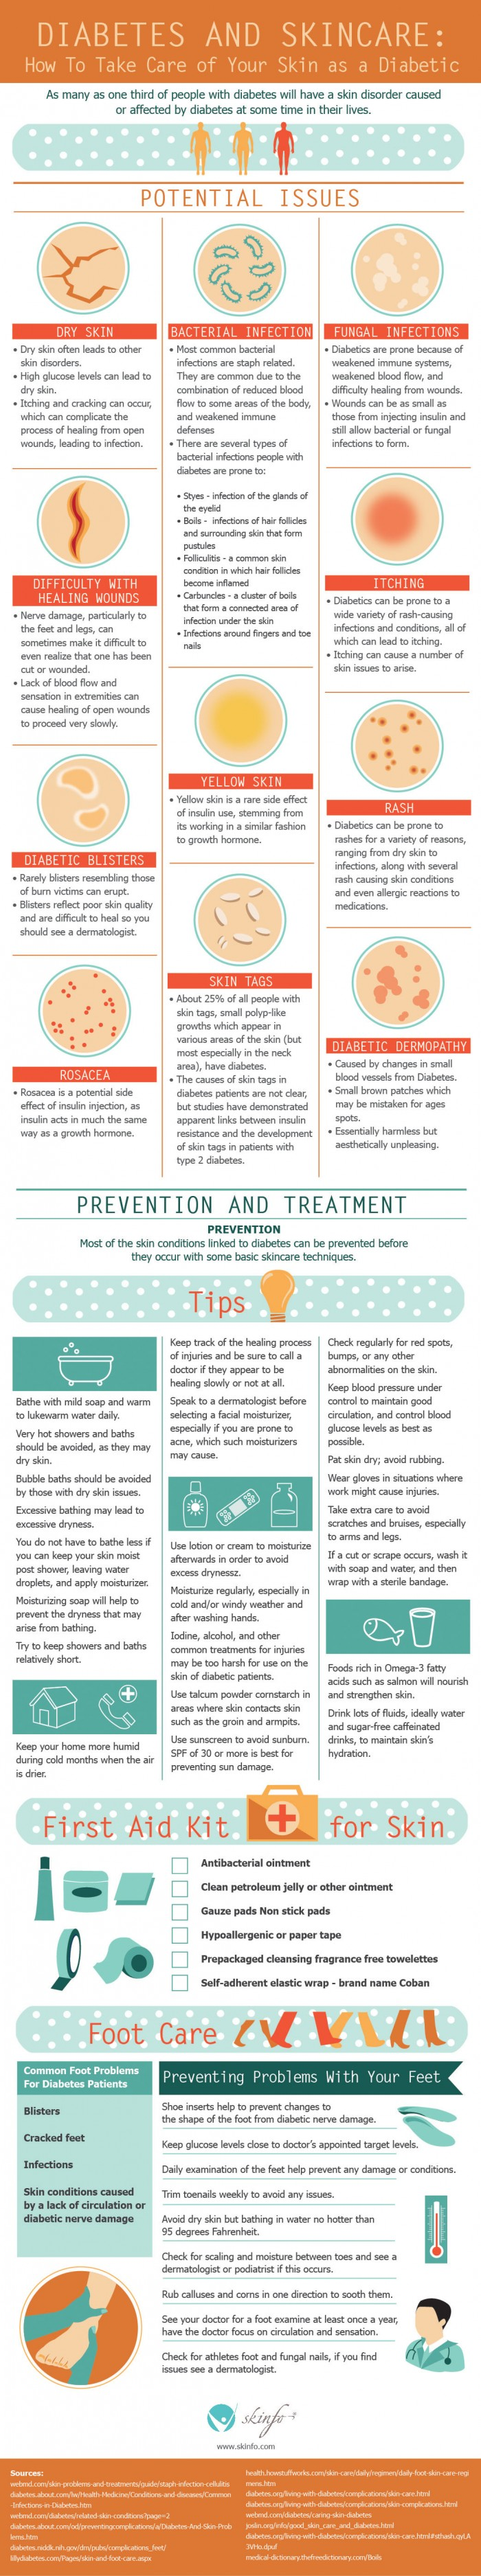 Link to diabetic skin issues infographic if you can't see this image: http://www.skinfo.com/blog/diabetes-skincare/#.VMgTUkfF8Vg